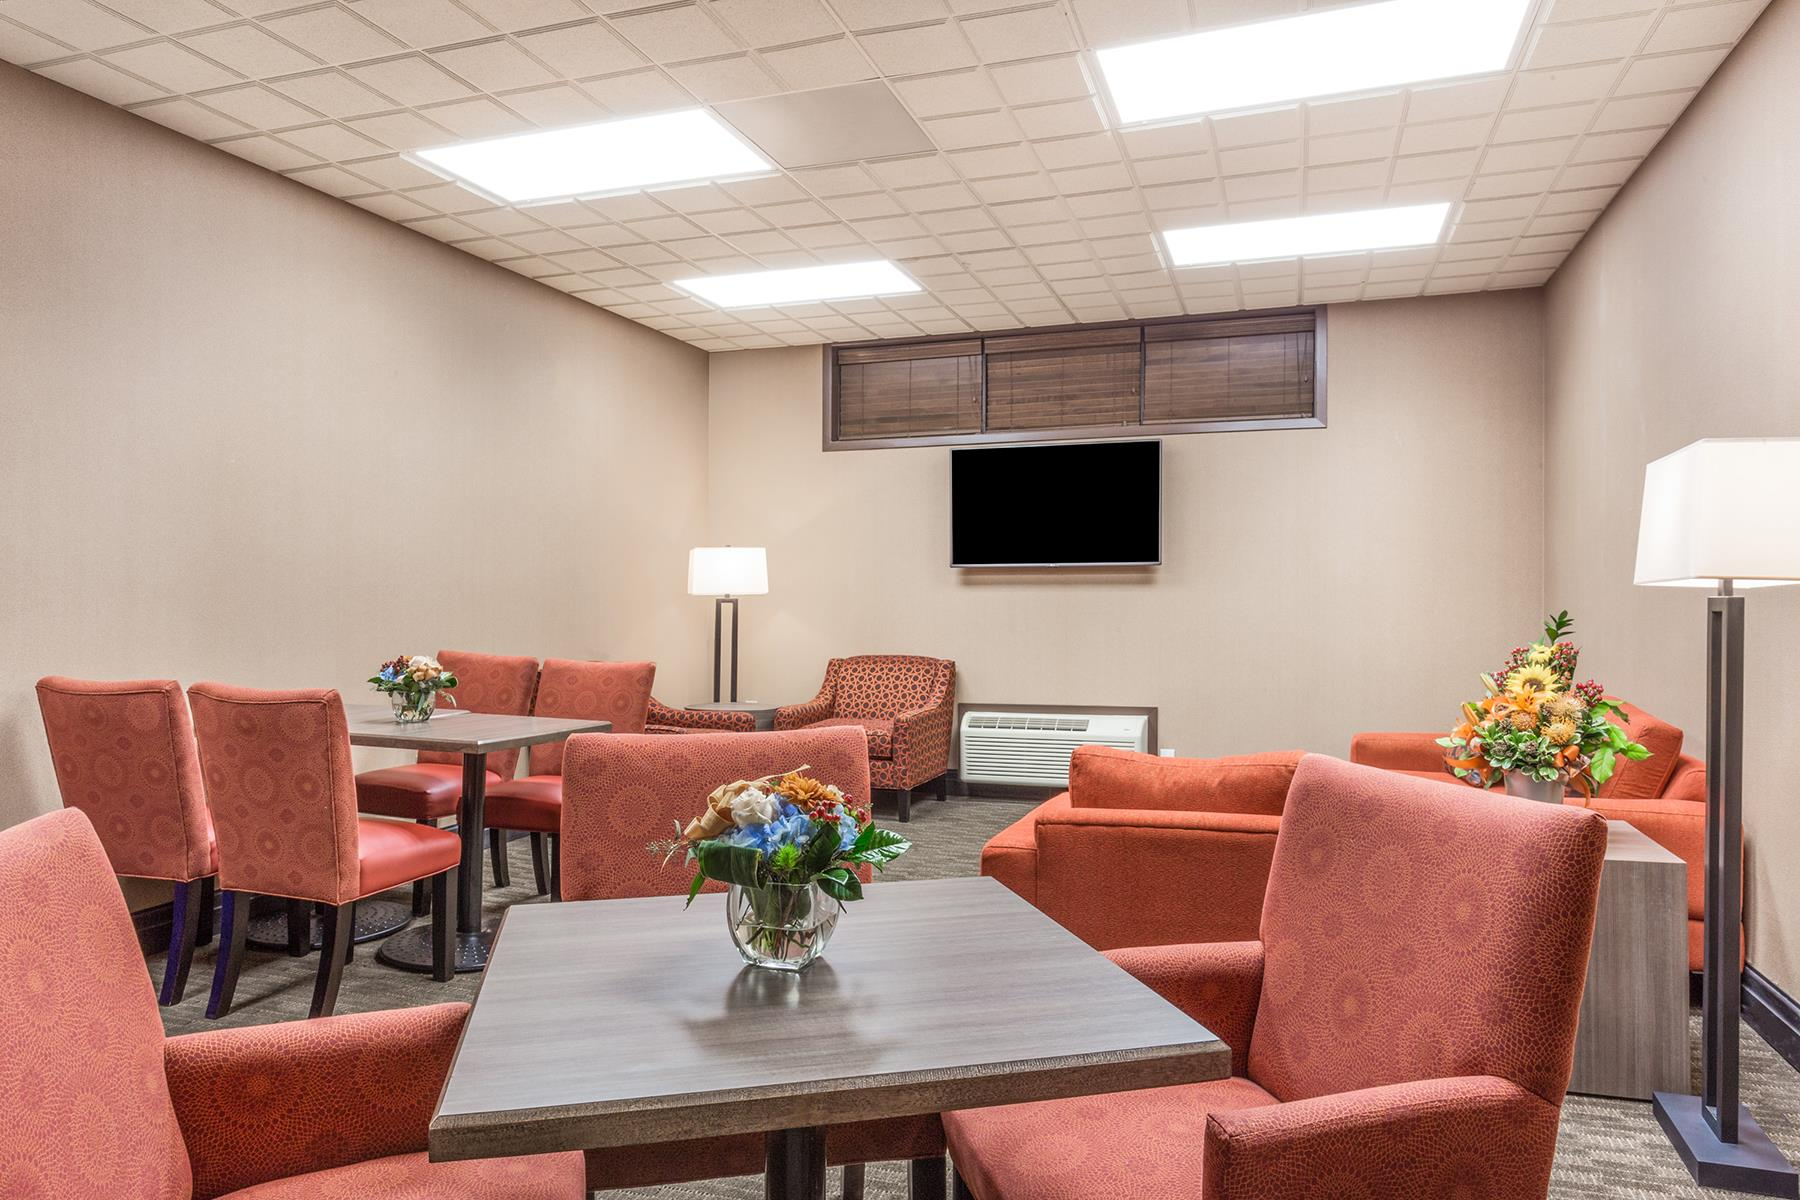 A lounge room with a tv and armchairs where one can relax in the Wingate by Wyndham resort in Regina SK